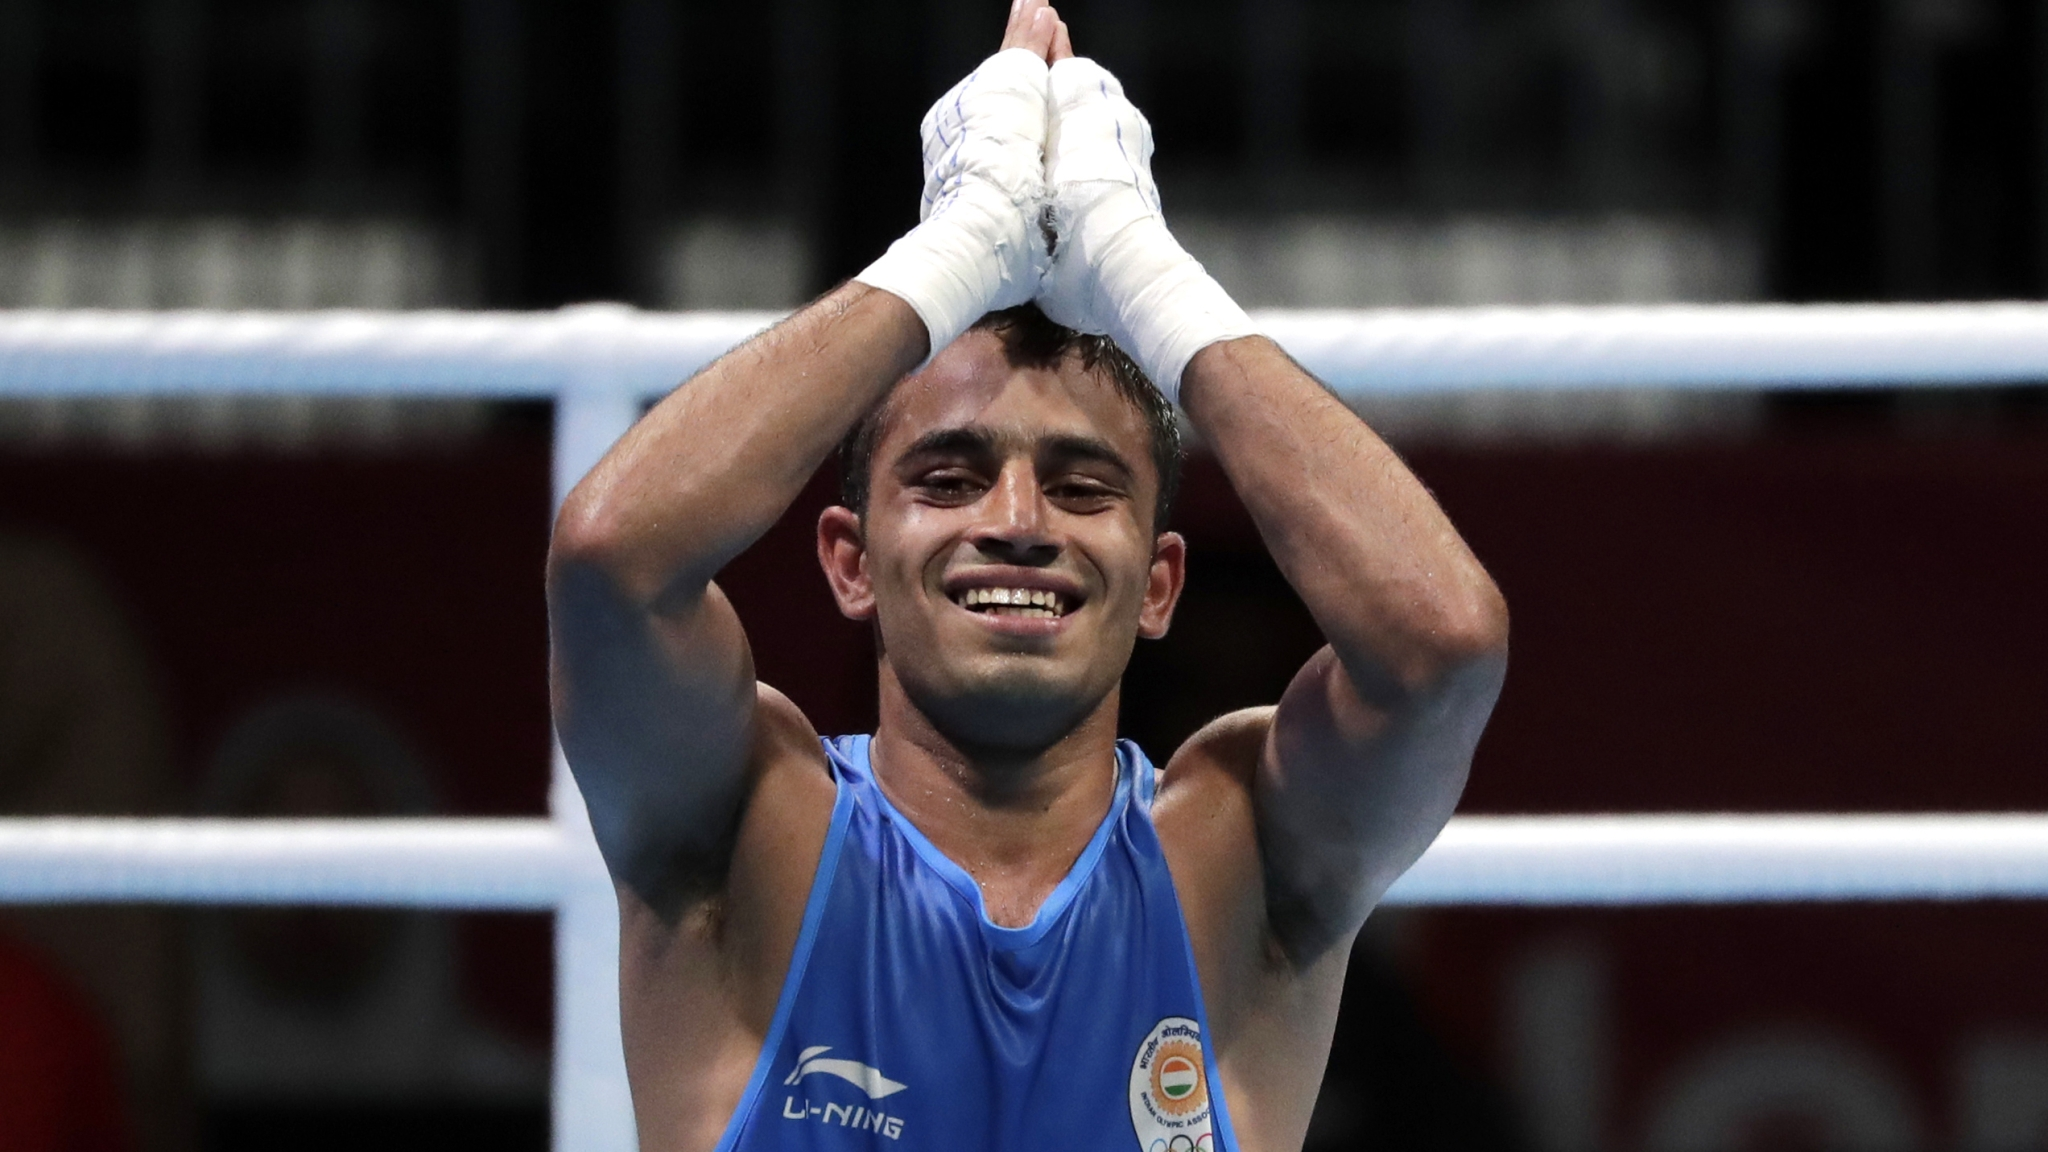 World Boxing C'ships: Amit Panghal Fights for Quarters Spot Today